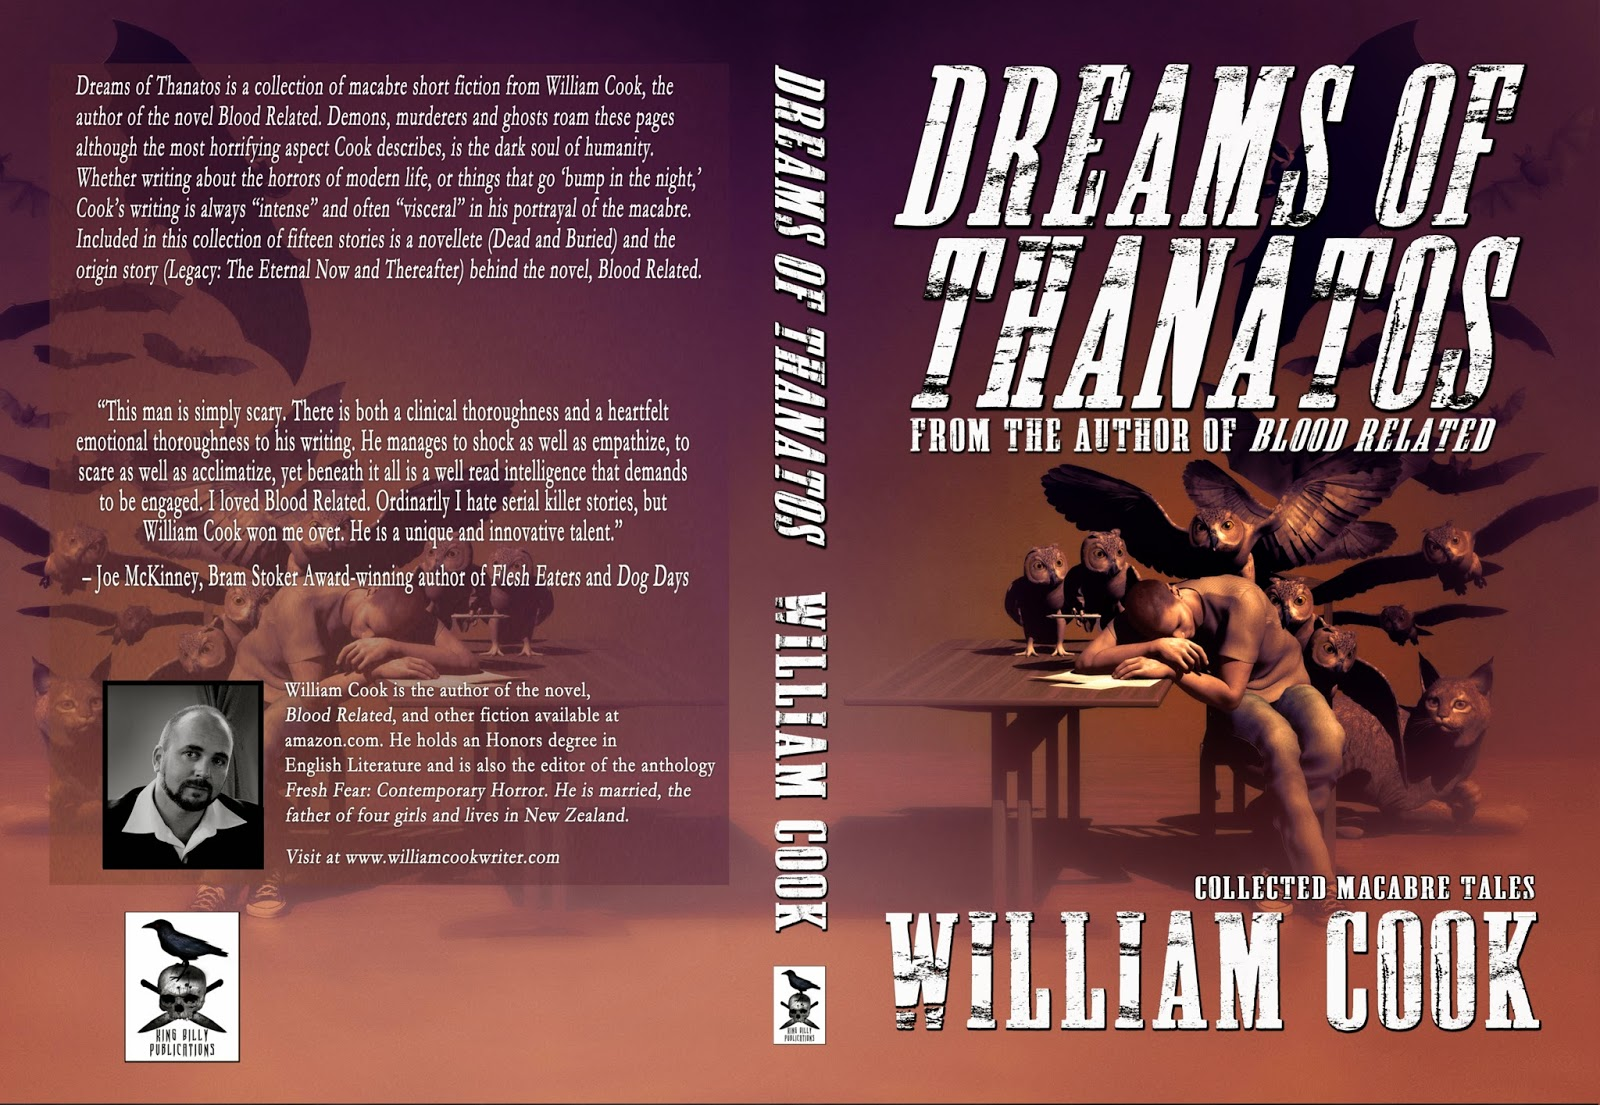 http://www.amazon.com/Dreams-Thanatos-Collected-Macabre-Tales/dp/1495994333/ref=sr_1_1?ie=UTF8&qid=1415610115&sr=8-1&keywords=dreams+of+thanatos